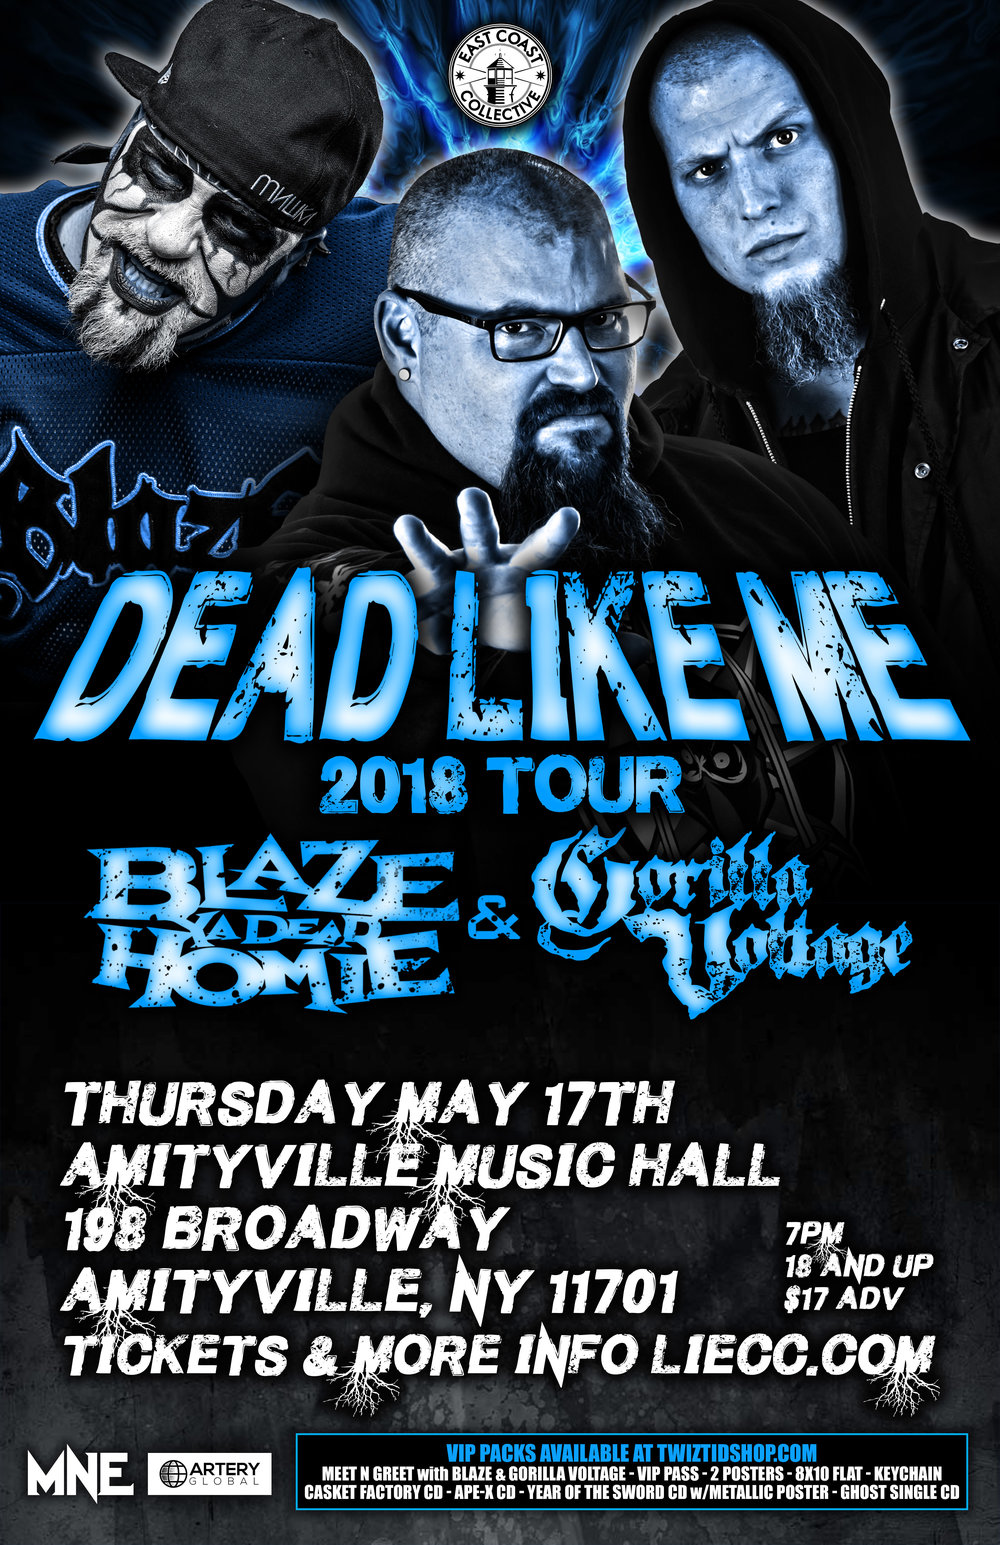 Blaze Ya Dead Home - Gorilla Voltage$17+ ADV18+ w/ ID